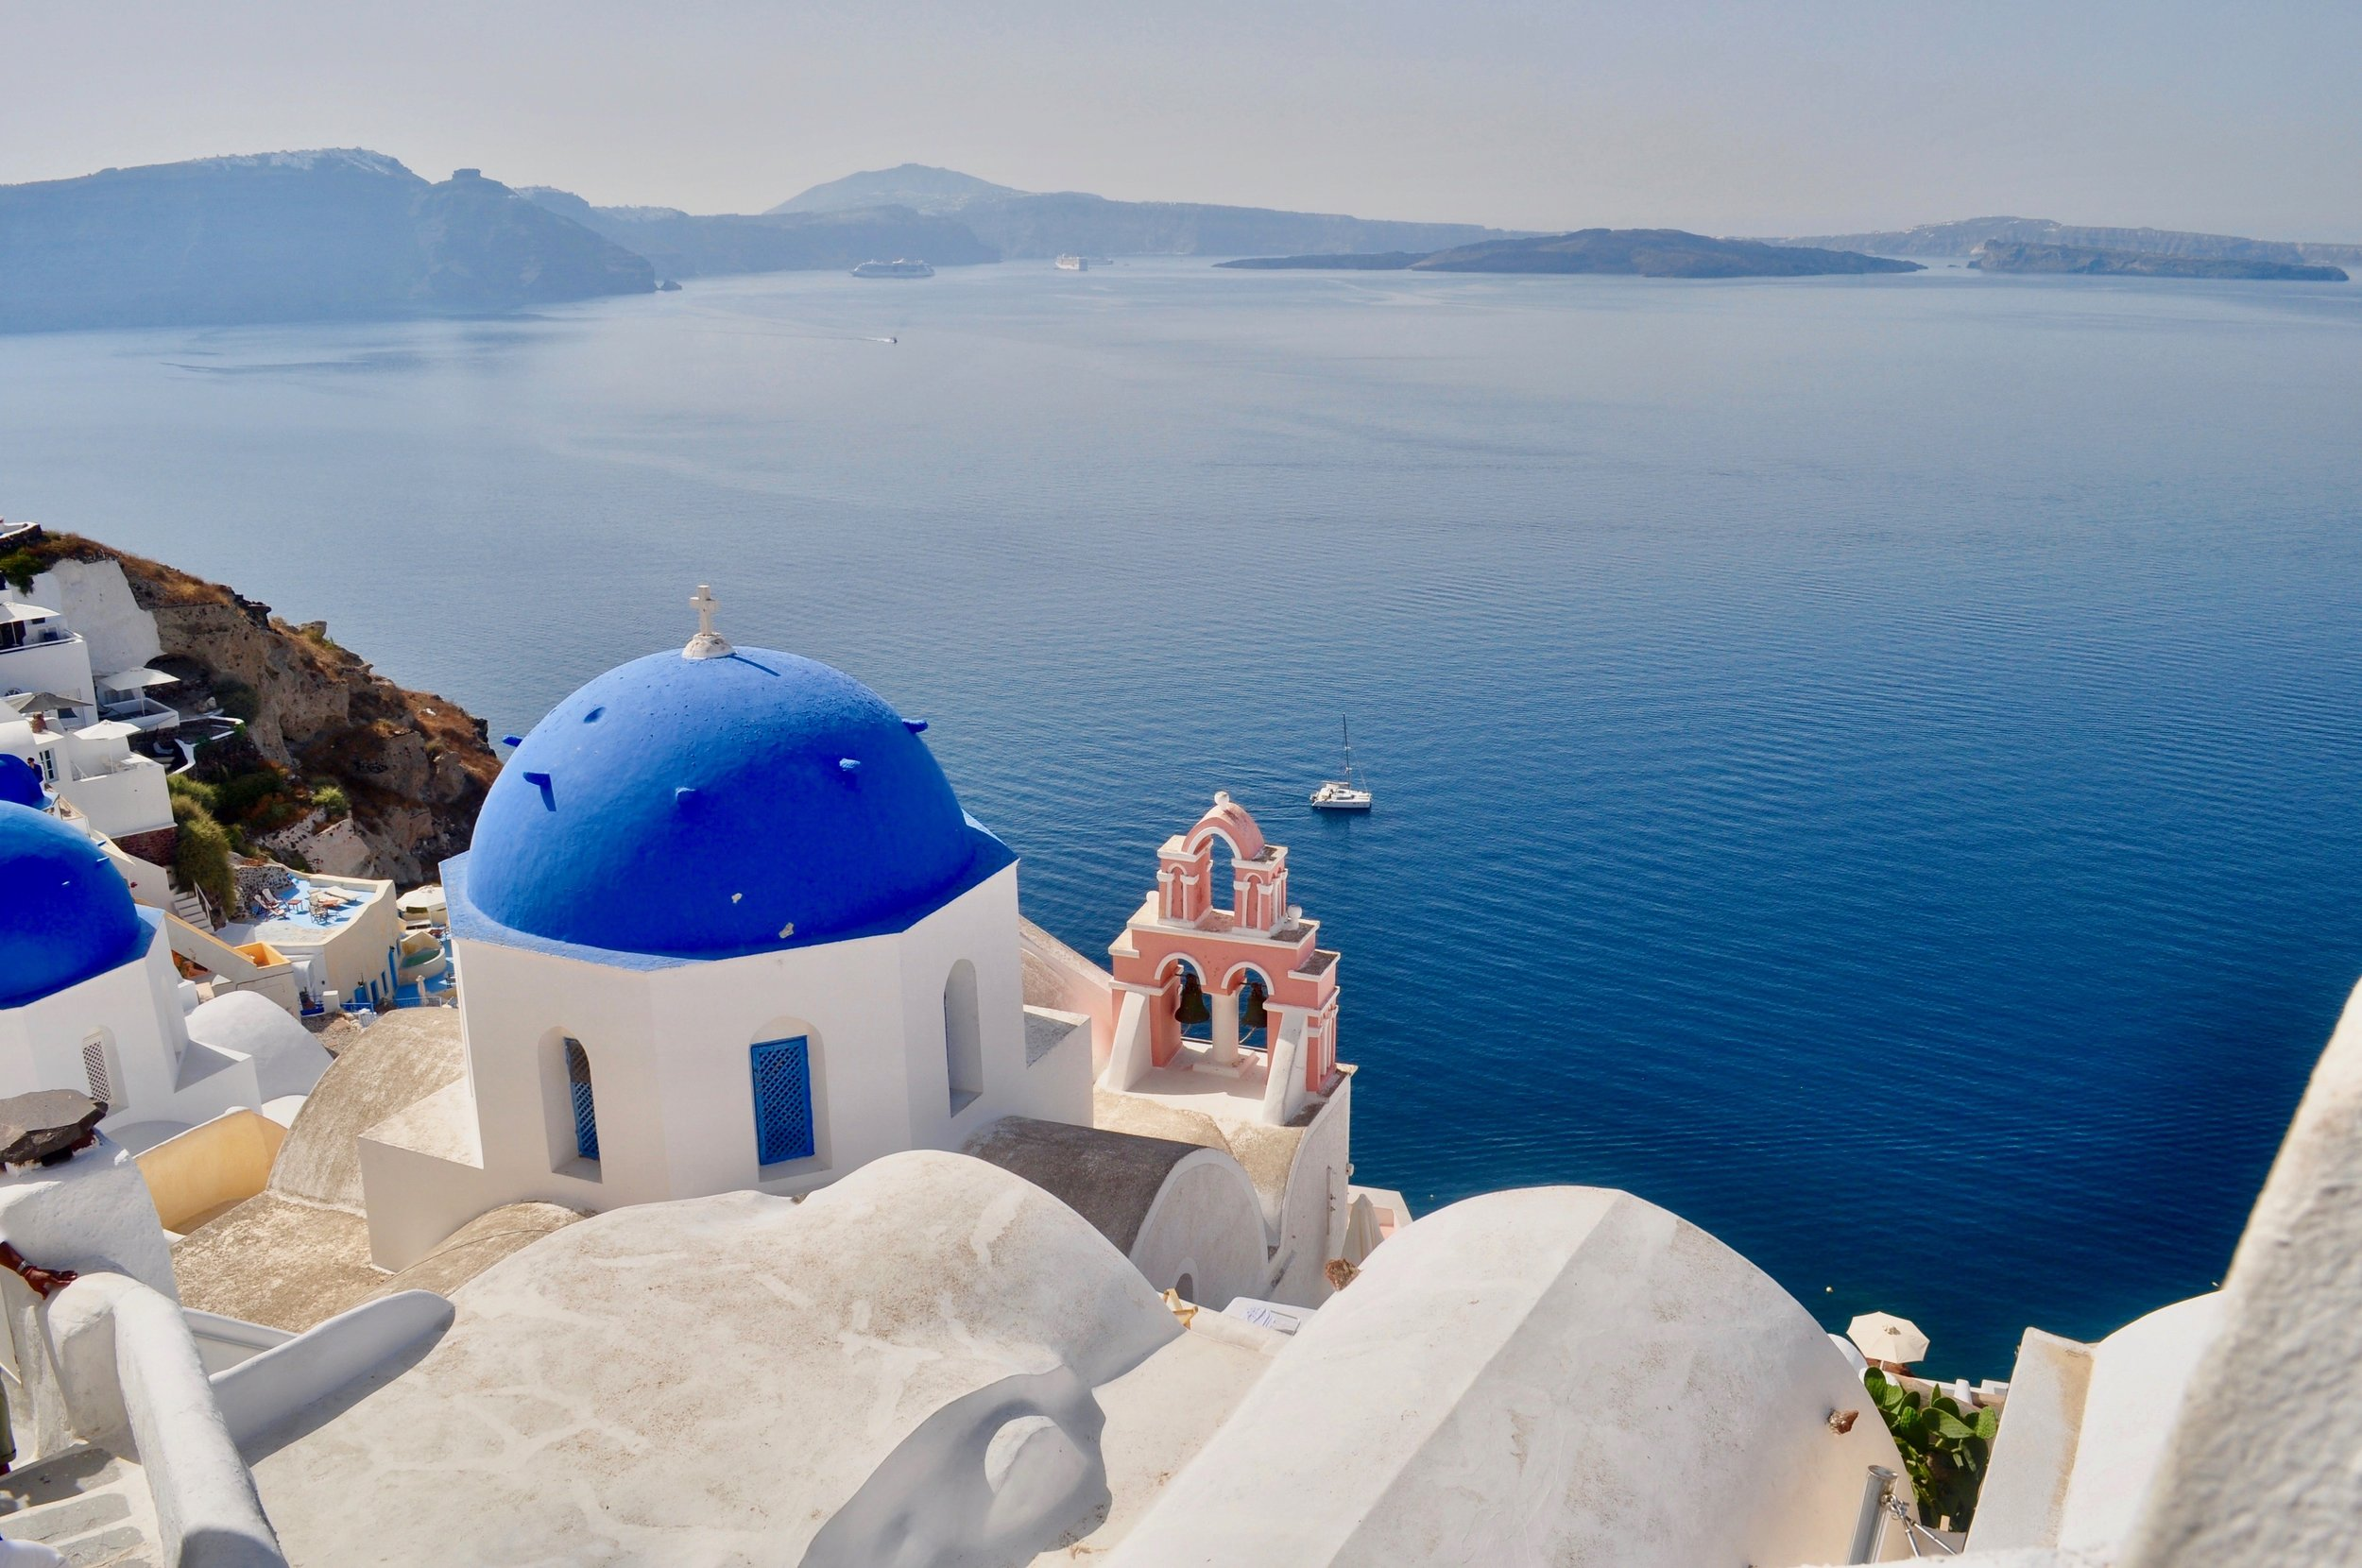 Exploring the Greek Isles on a Cruise - A Happy Passport #Greece #cruise #mediterranean